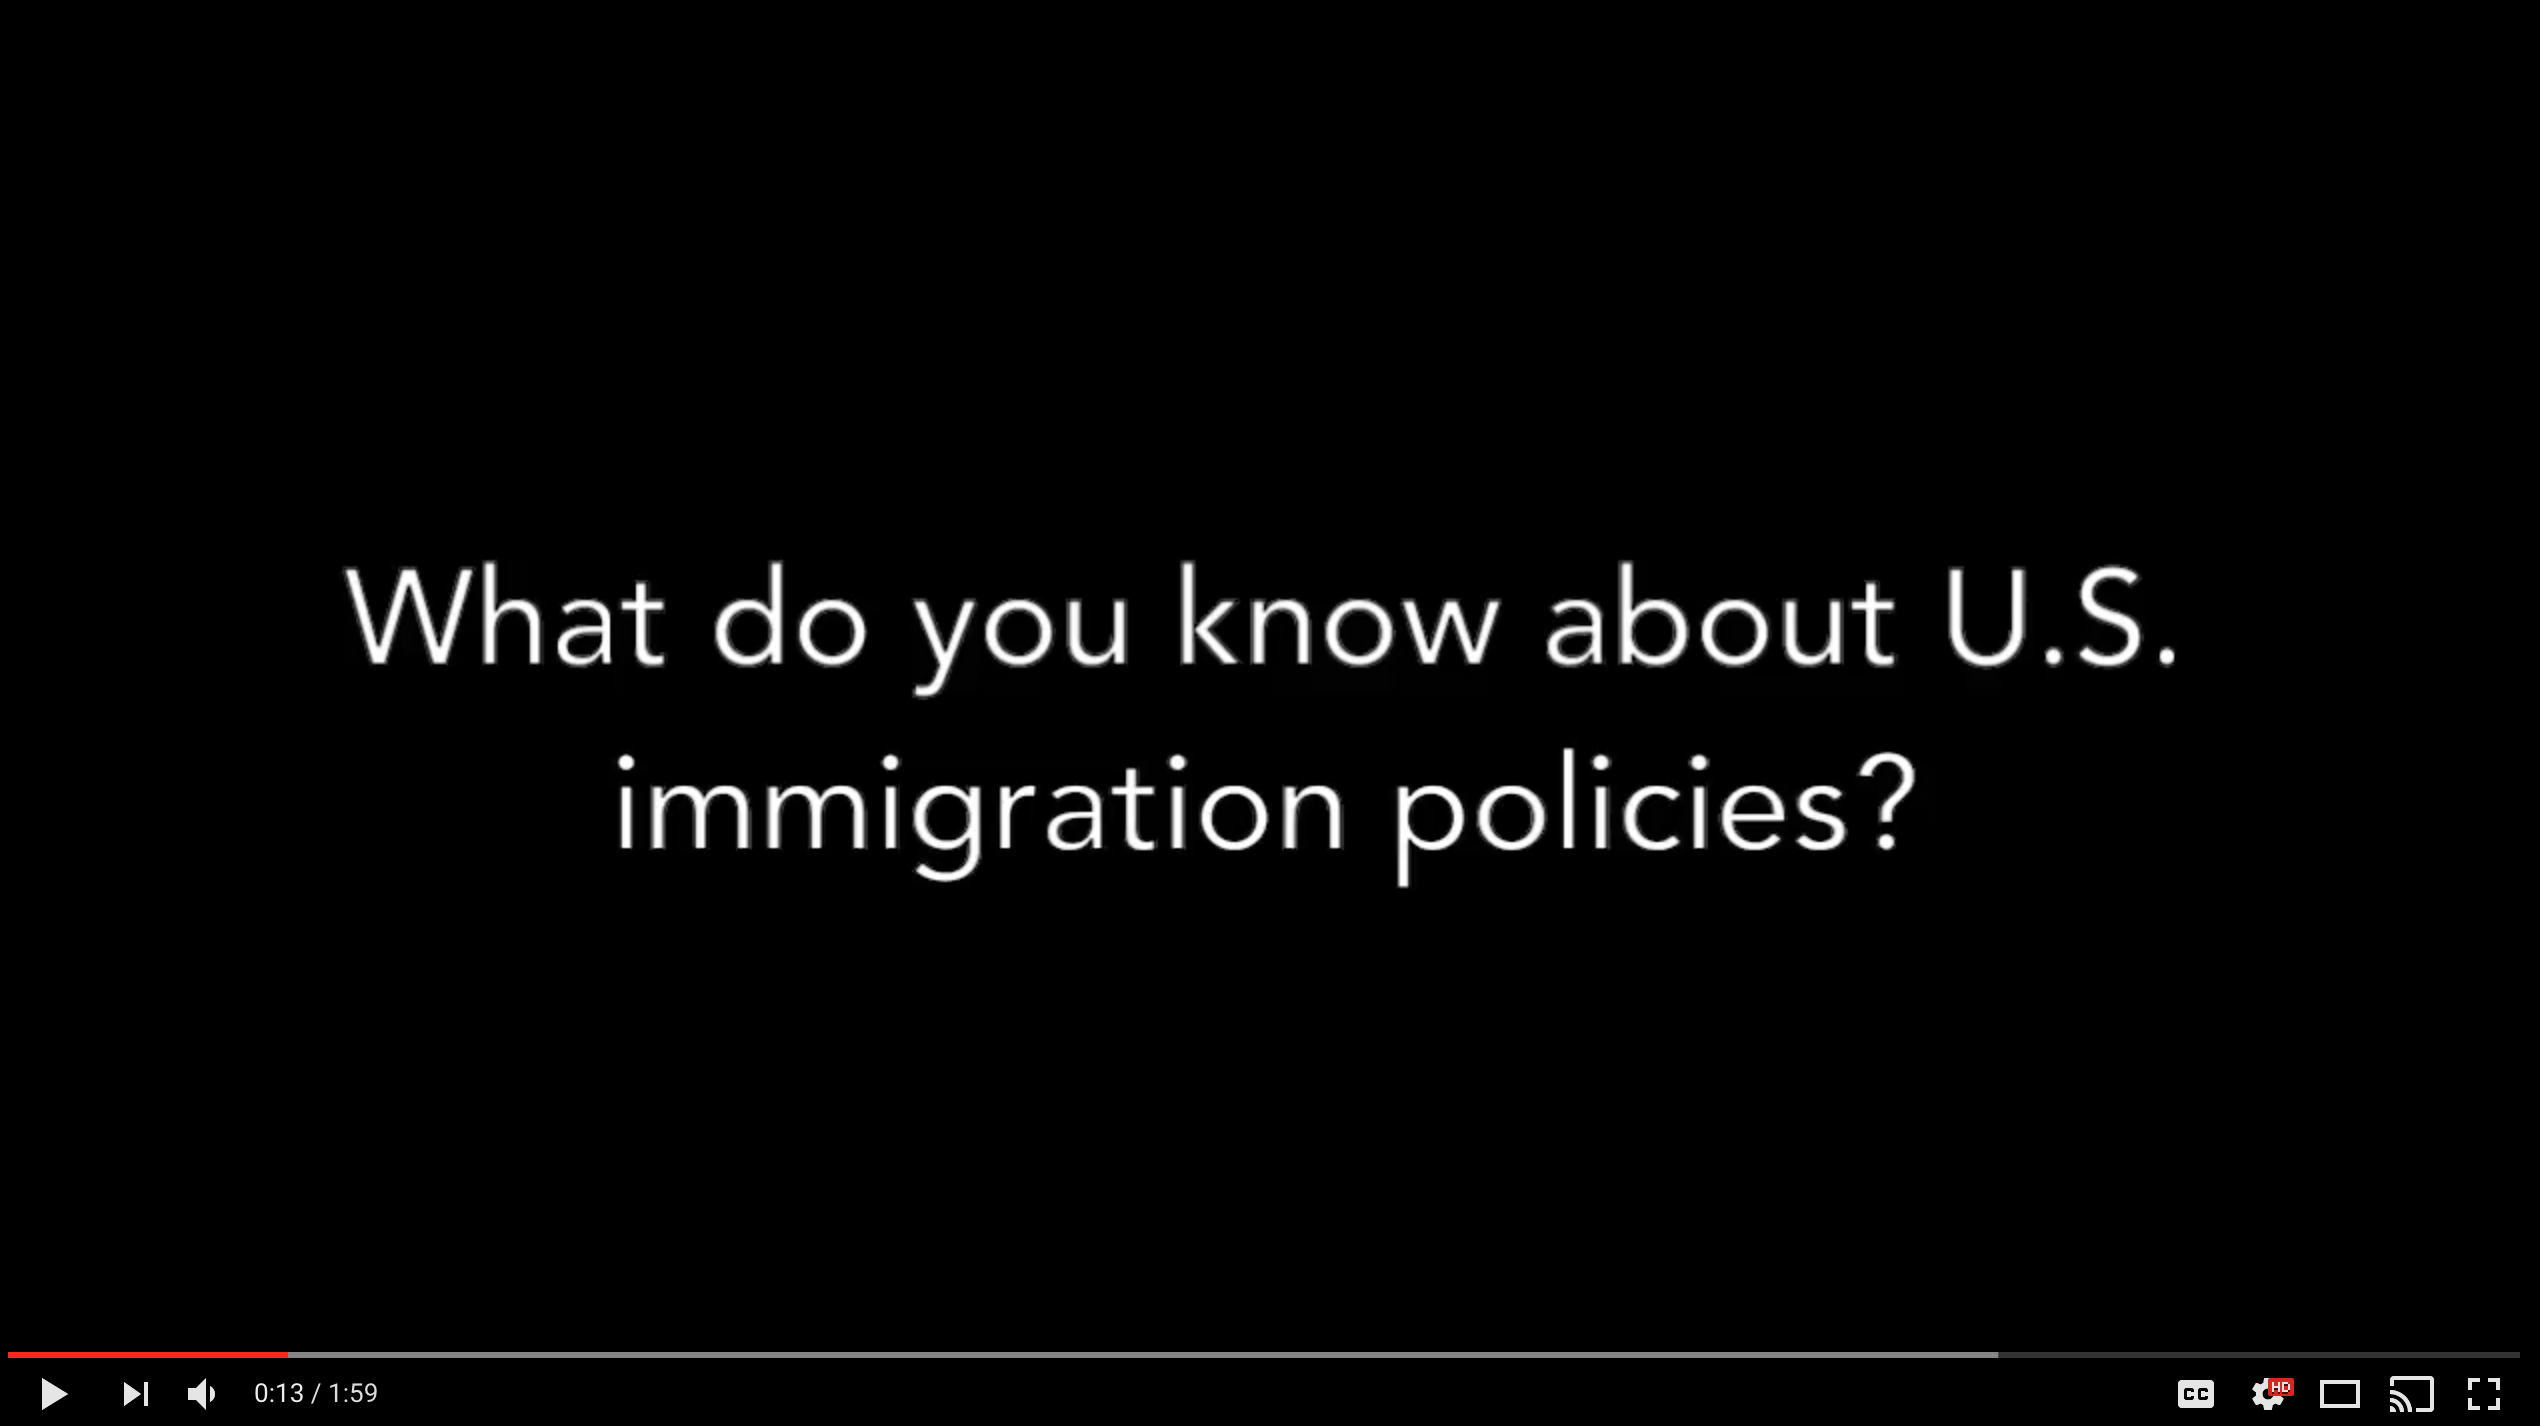 Southern students on U.S. immigration